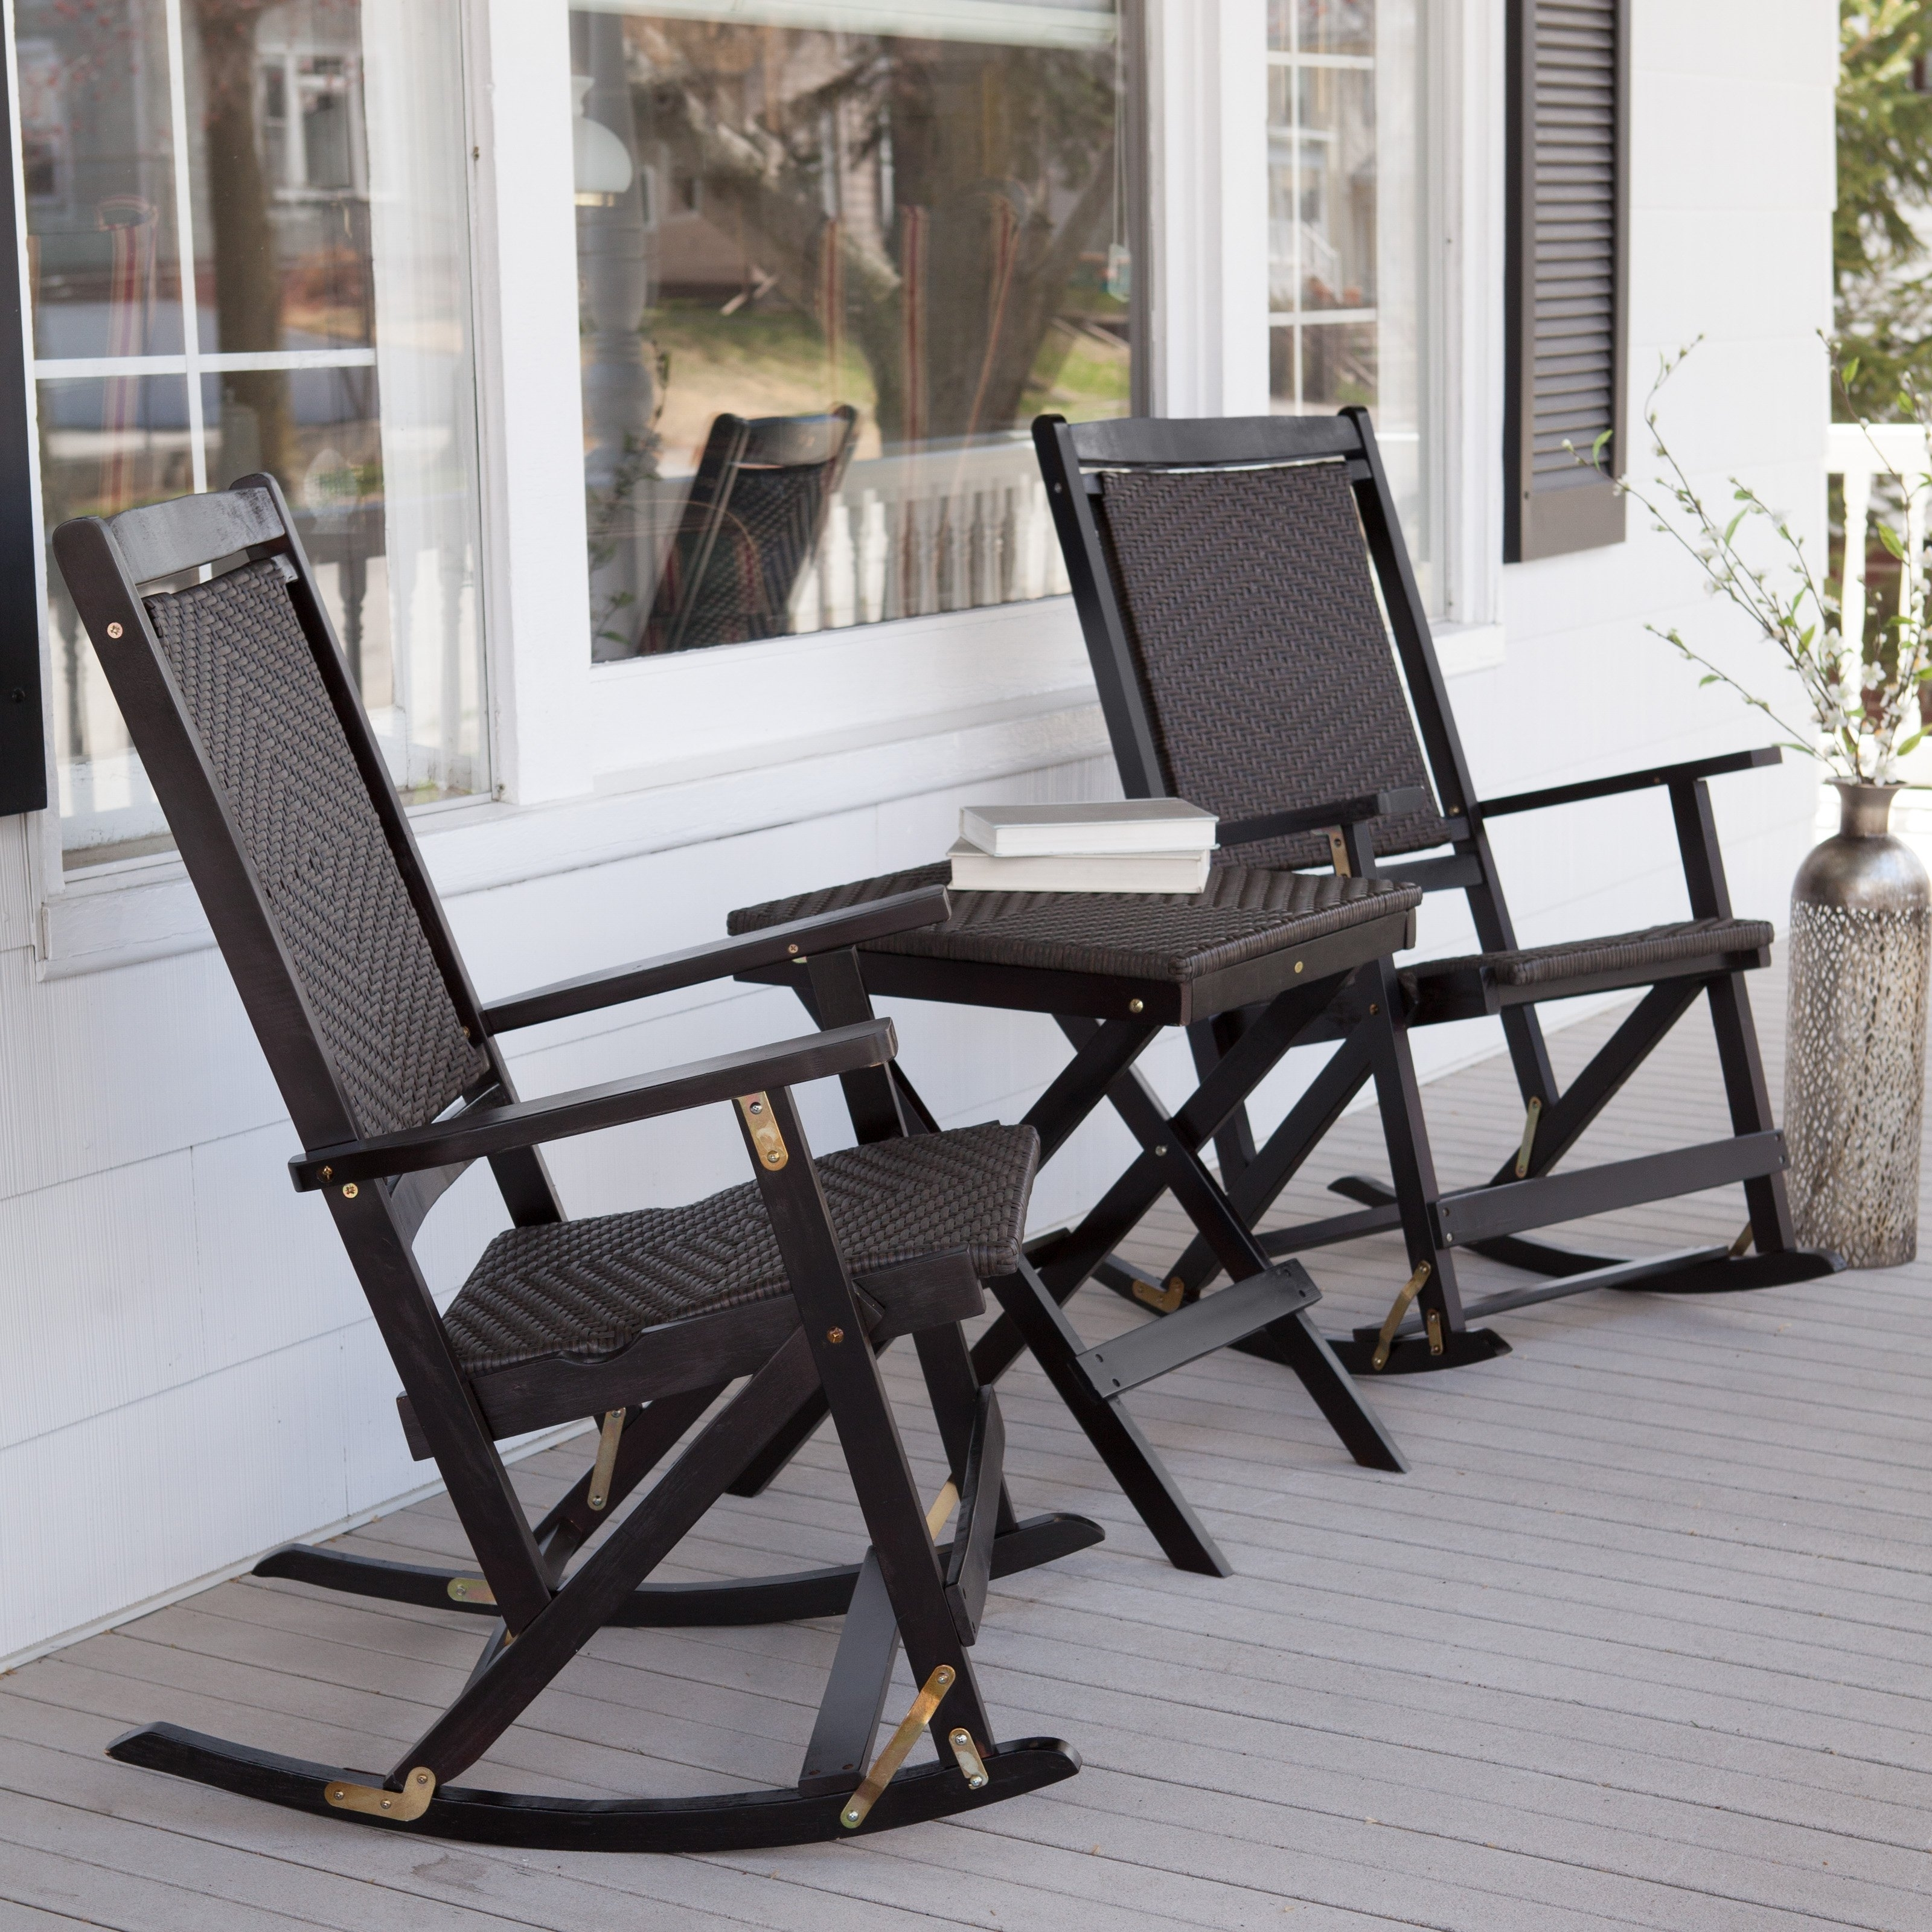 Most Recent Outdoor Wicker Rocking Chair Set – Outdoor Designs Throughout Rattan Outdoor Rocking Chairs (View 2 of 15)